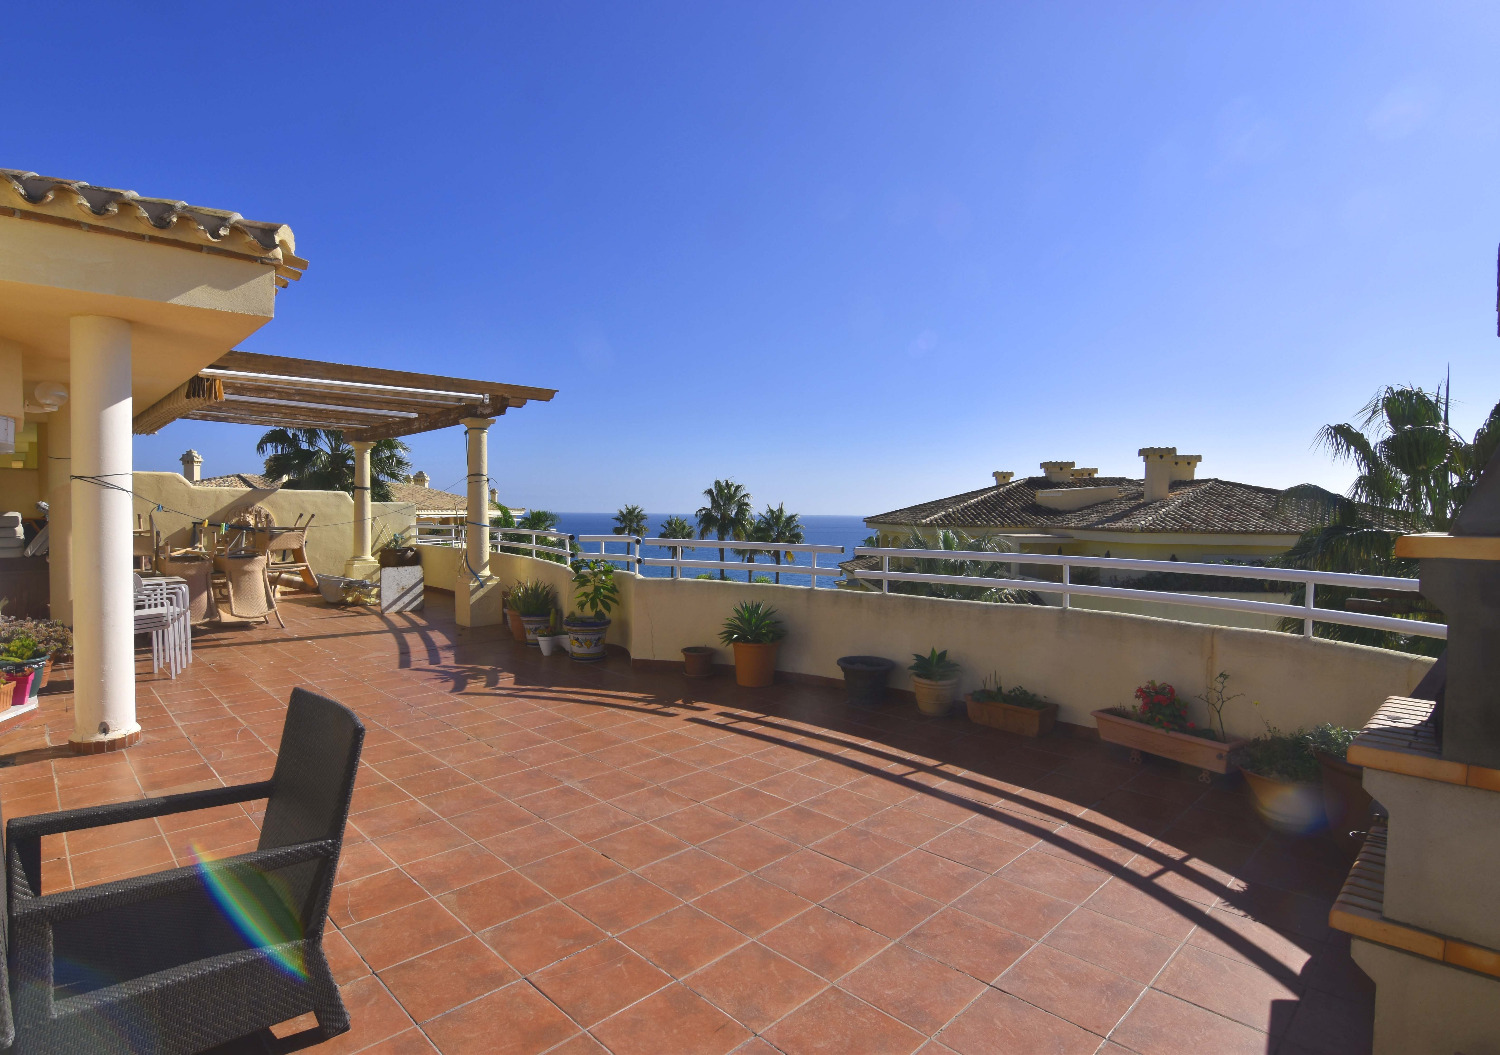 Penthouse for rent on the beachfront in Costaquebrada, Benalmadena Costa